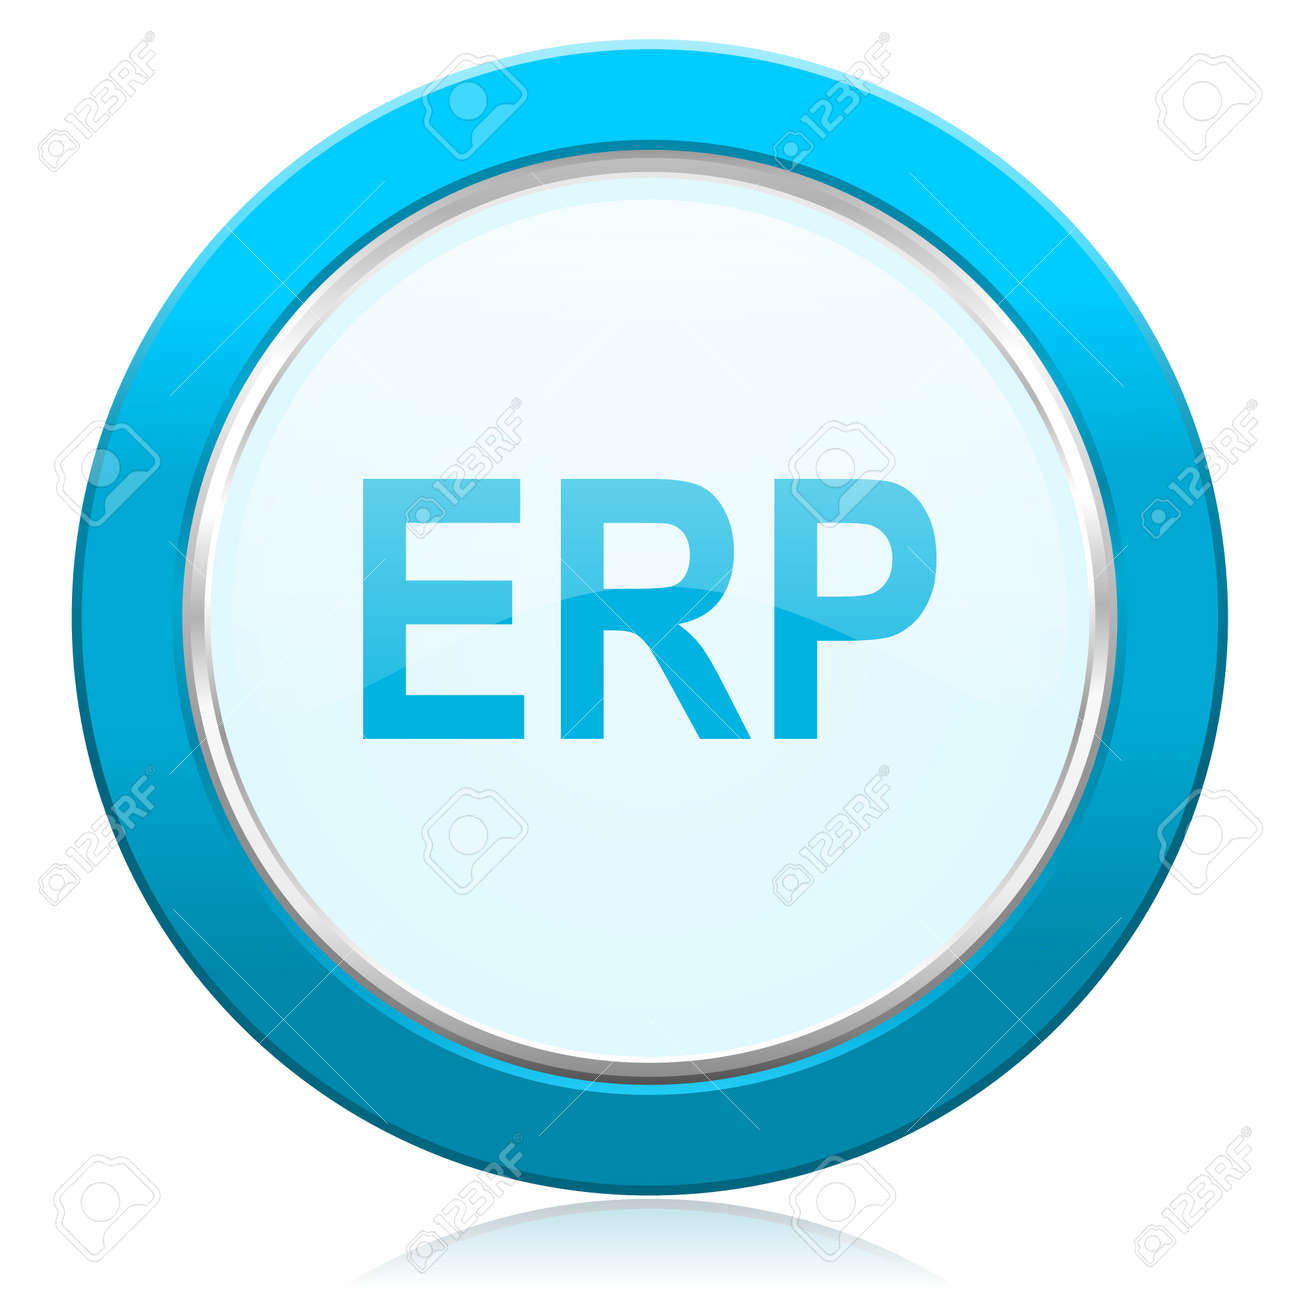 erp icon stock photo picture and royalty free image image 35406654